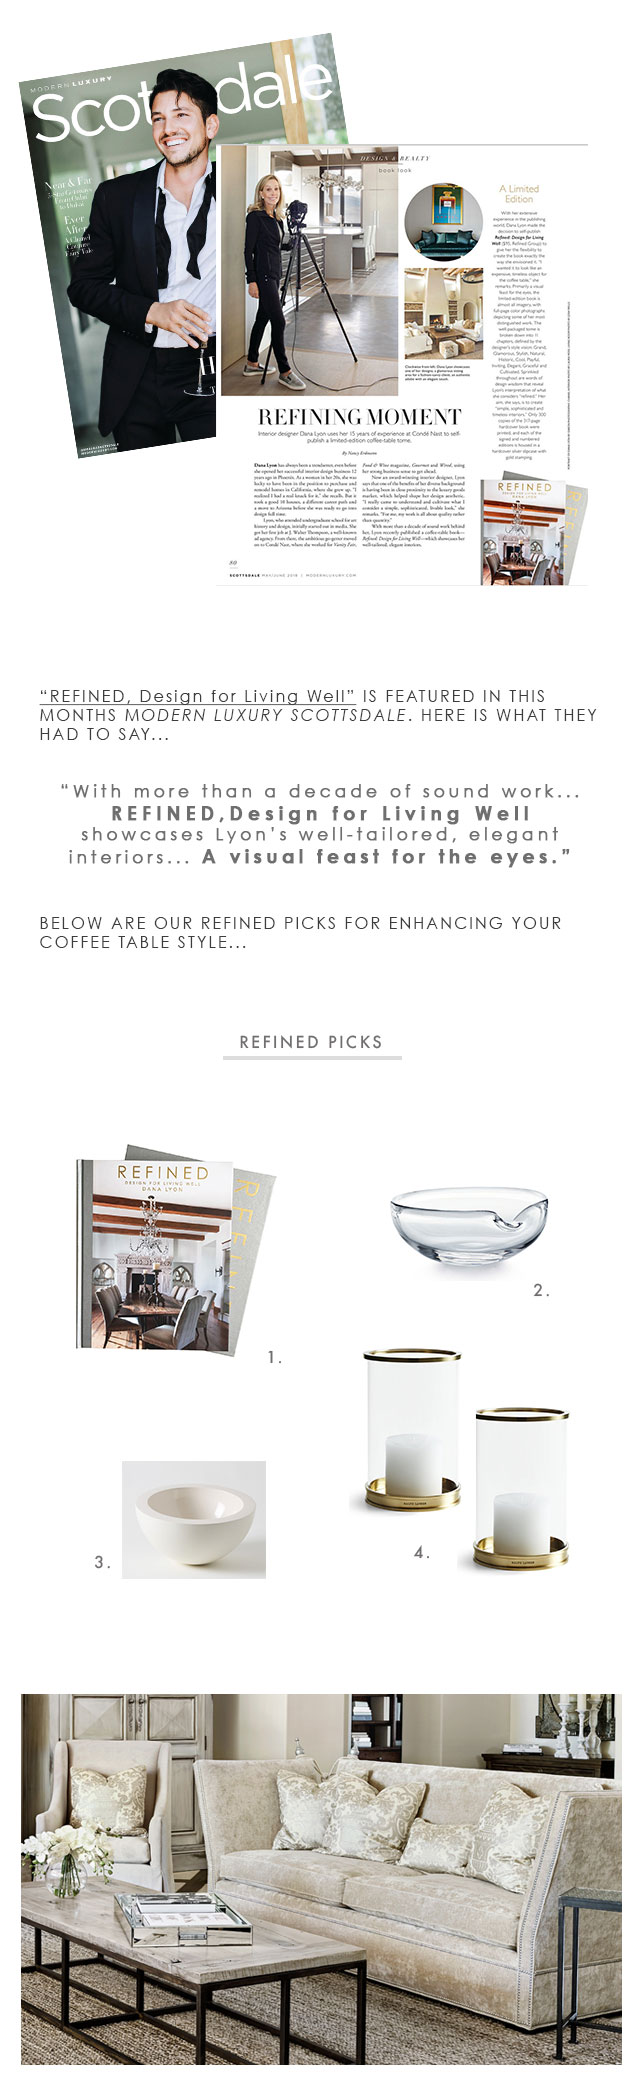 1.  REFINED BOOK   2.  TIFFANY THUMBPRINT BOWL  3.  JOHN PAWSON BOWL FOR MARCH SF  4.  R  ALPH LAUREN BRASS HURRICANES